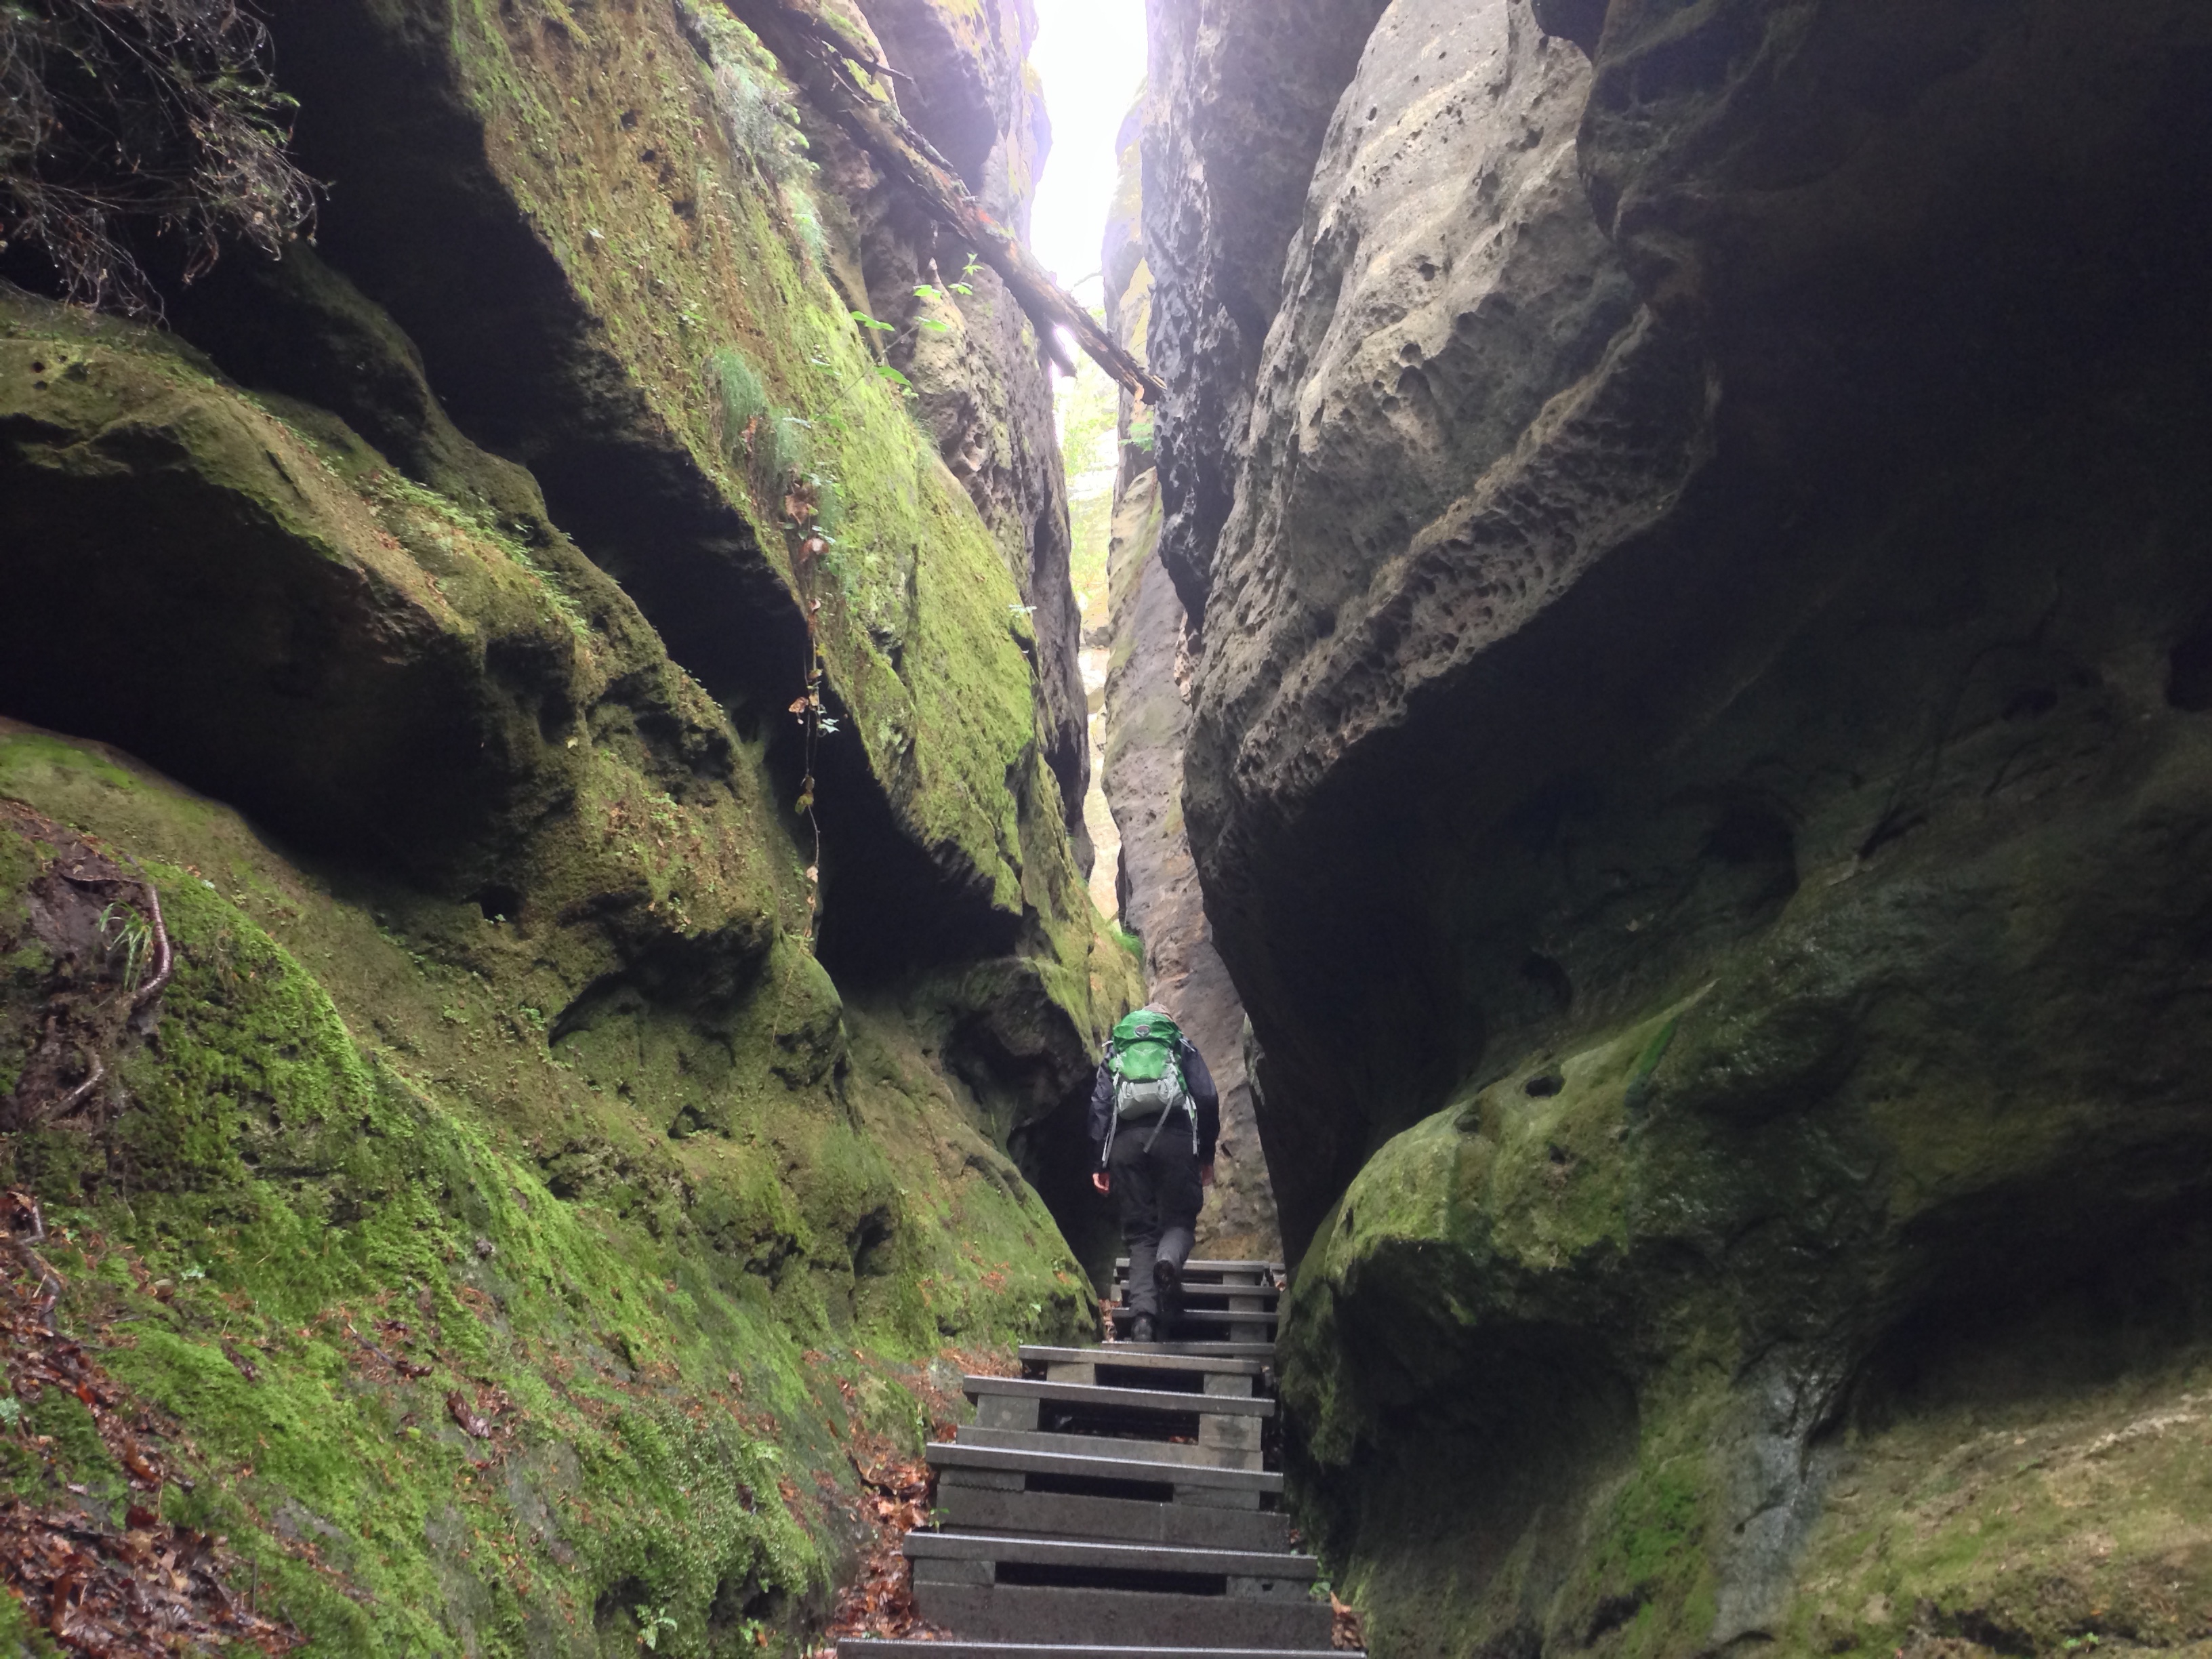 Elbe Sandstone Mountains Hike Malerweg - In the Gorge